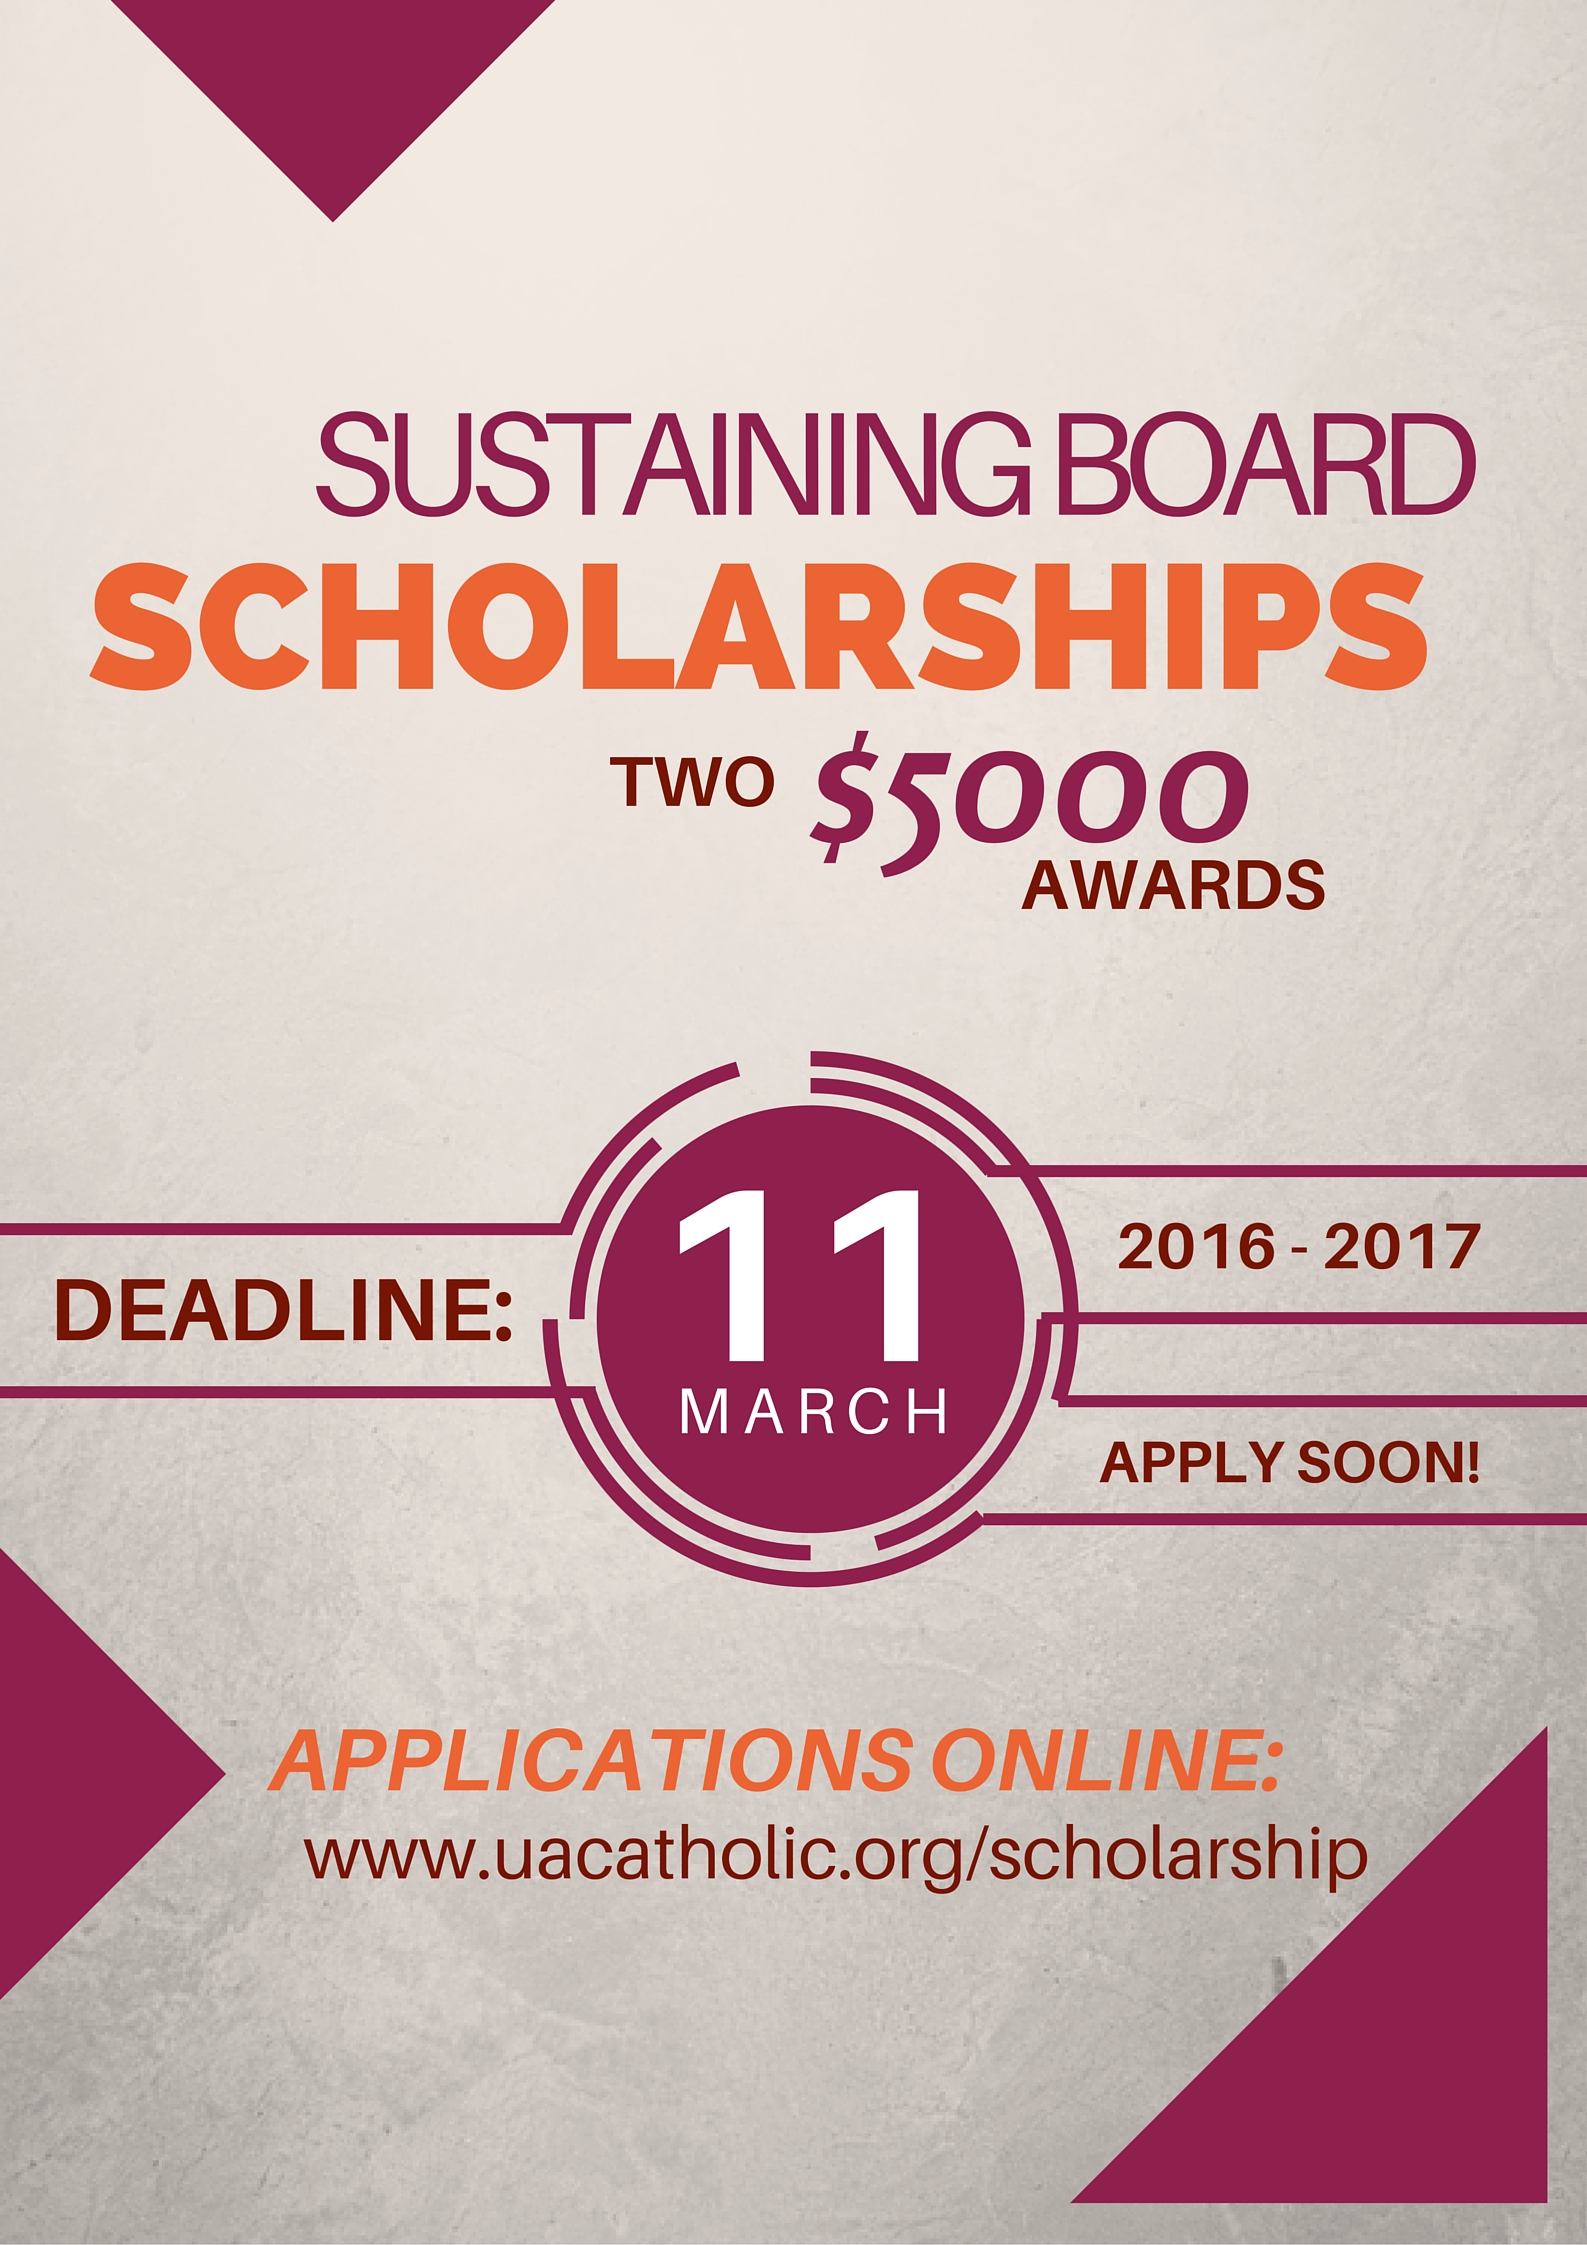 Newman Sustaining Board Scholarship: 2 $5000 Awards.  Application Deadline is March 11; Apply Soon at http://uacatholic.org/scholarship